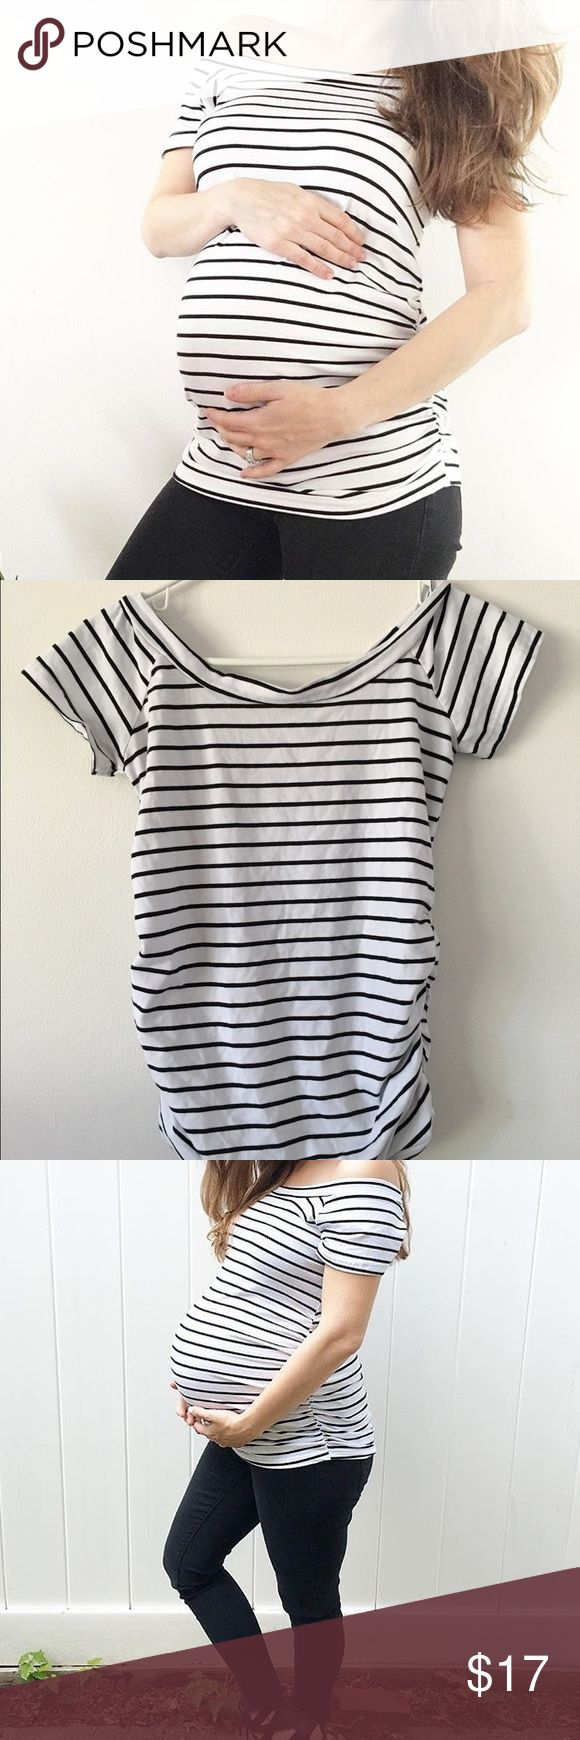 Off Shoulder Maternity Top Striped off the shoulder stretchy maternity top. Worn twice. Tops Tees - Short Sleeve